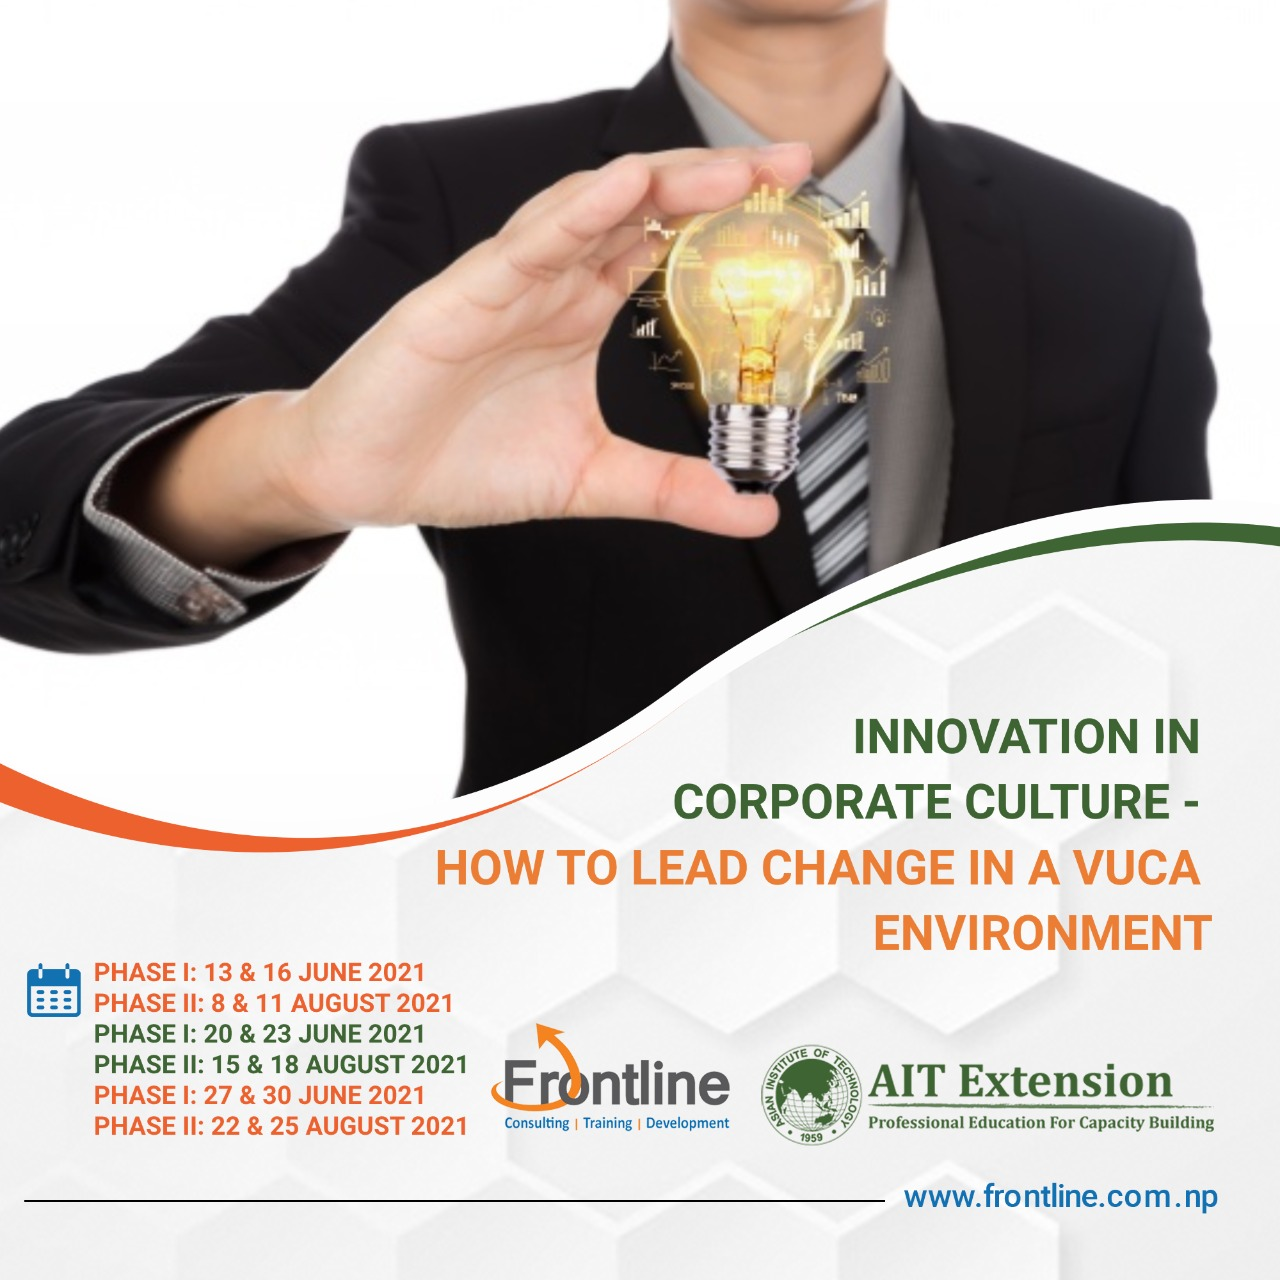 Innovation in Corporate Culture – How to lead change in a VUCA Environment